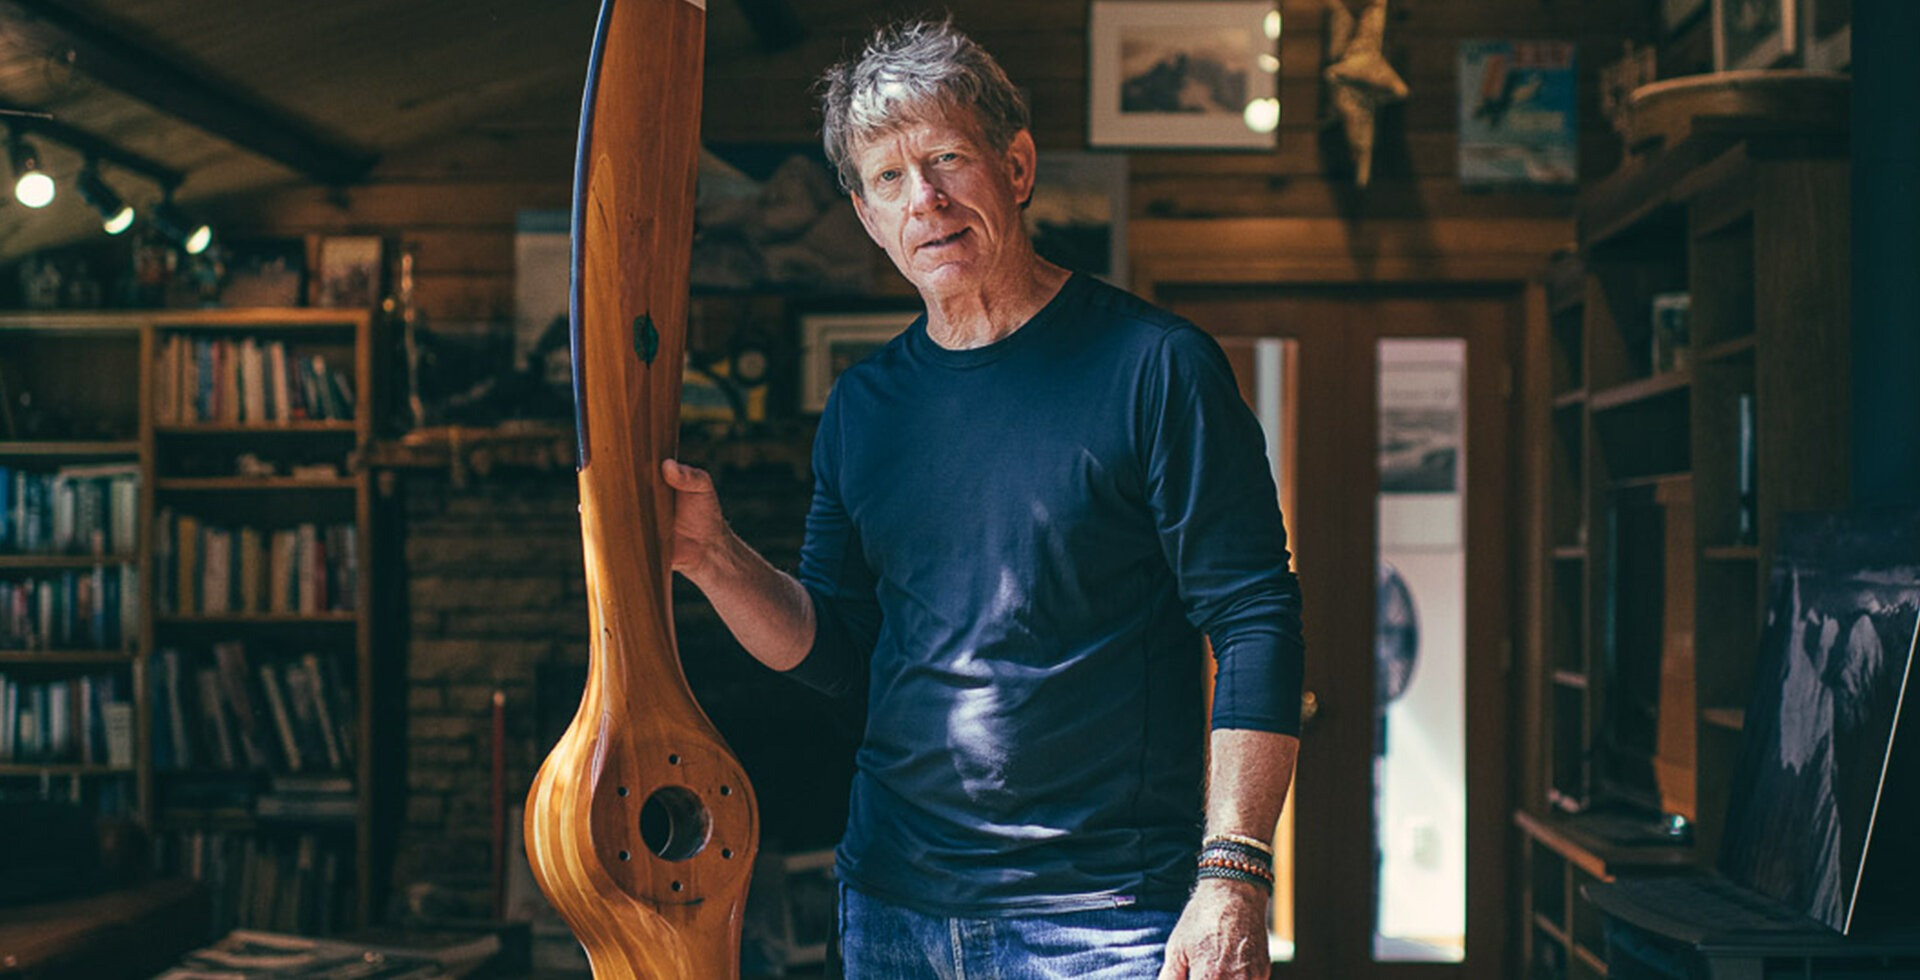 """John Scurlock holds a cherry wood propeller made by his friend Ted Hendrickson. """"I saw it one day in his shop and thought it was a work of art, he sold it to me for $300 and it's been hanging on my living room wall ever since,"""" John says."""